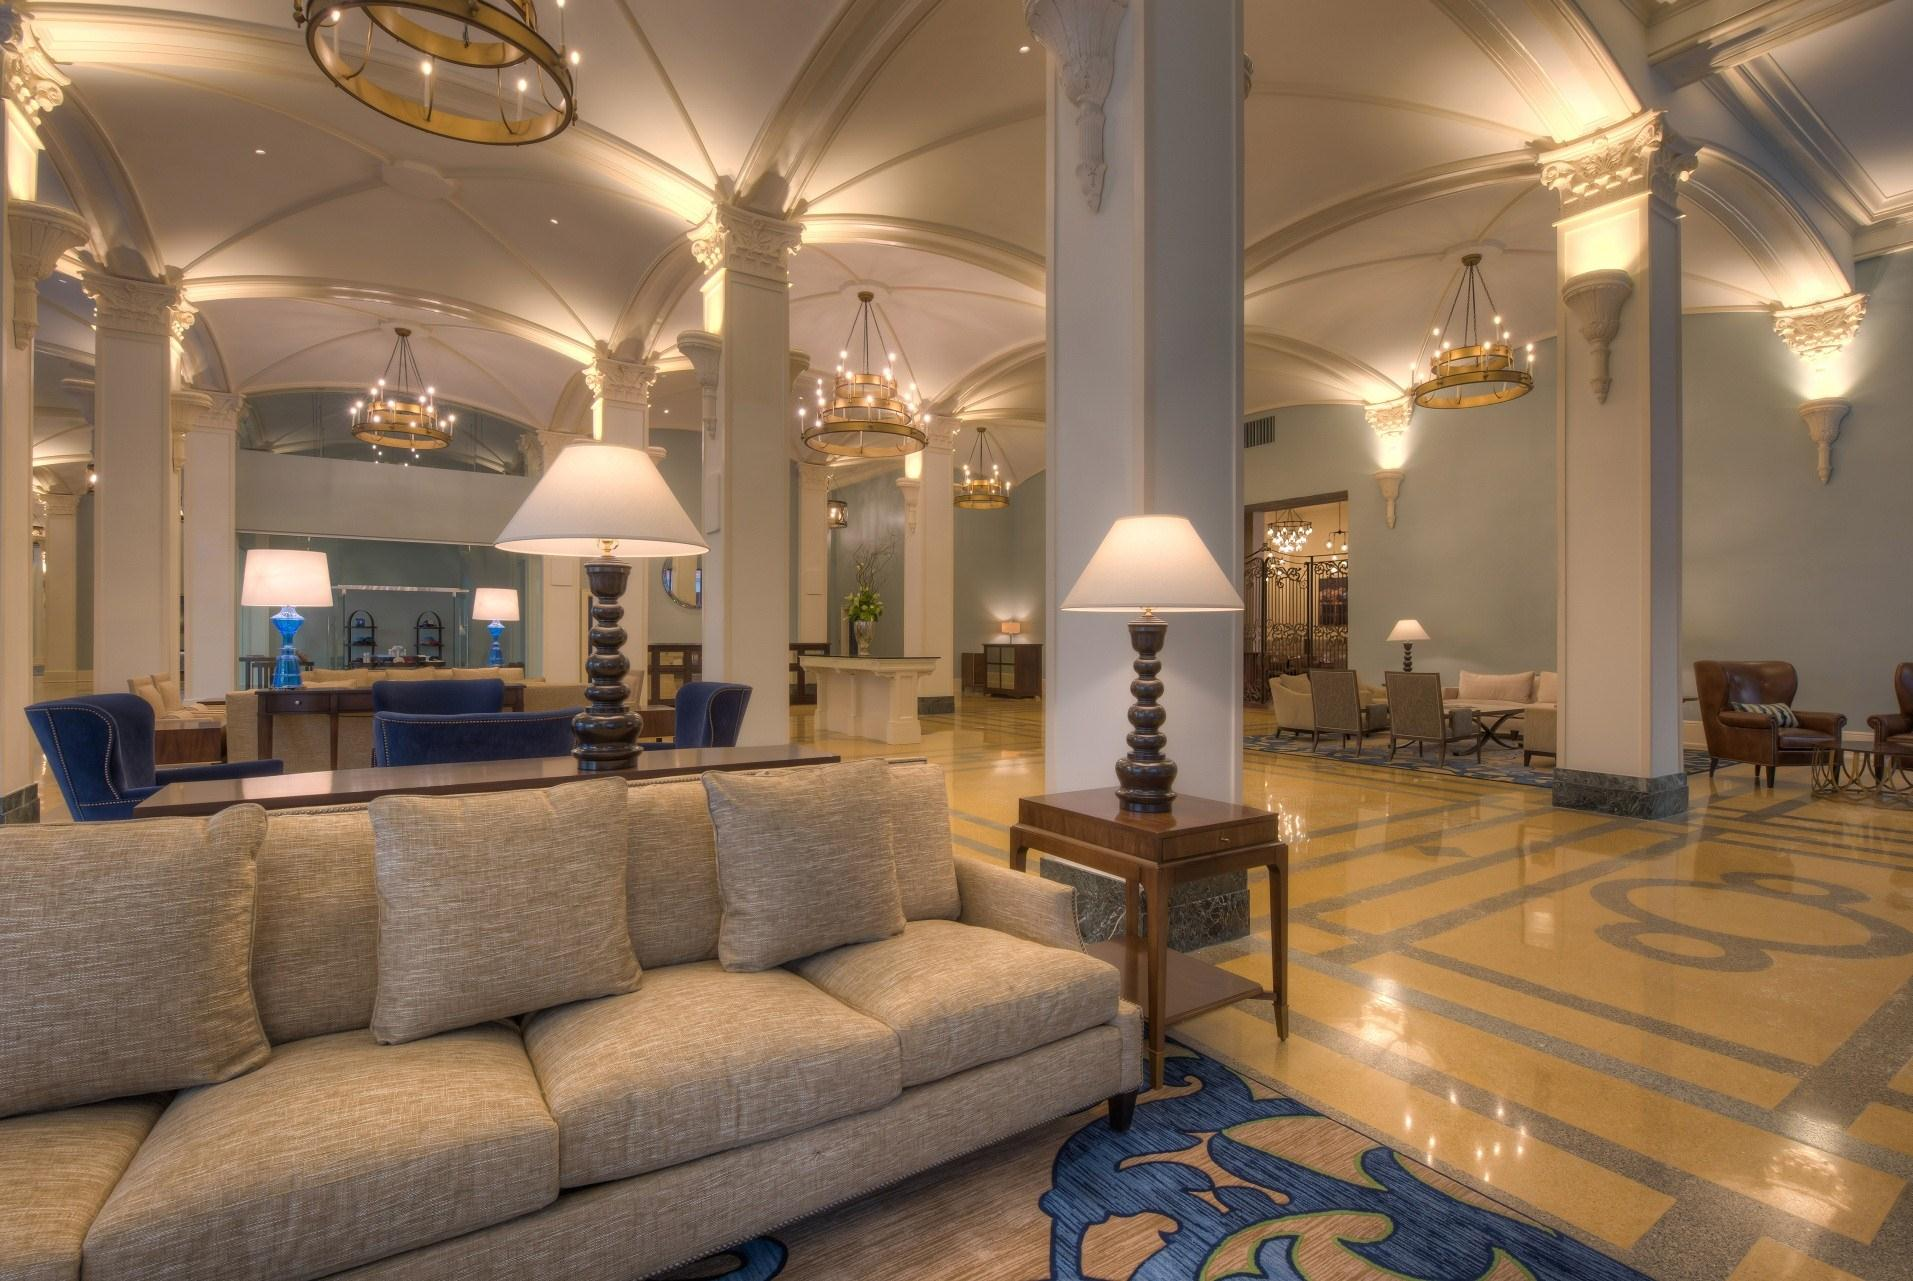 Mississippi, USA Hotels. Find Event Venues and Meeting Space in ...